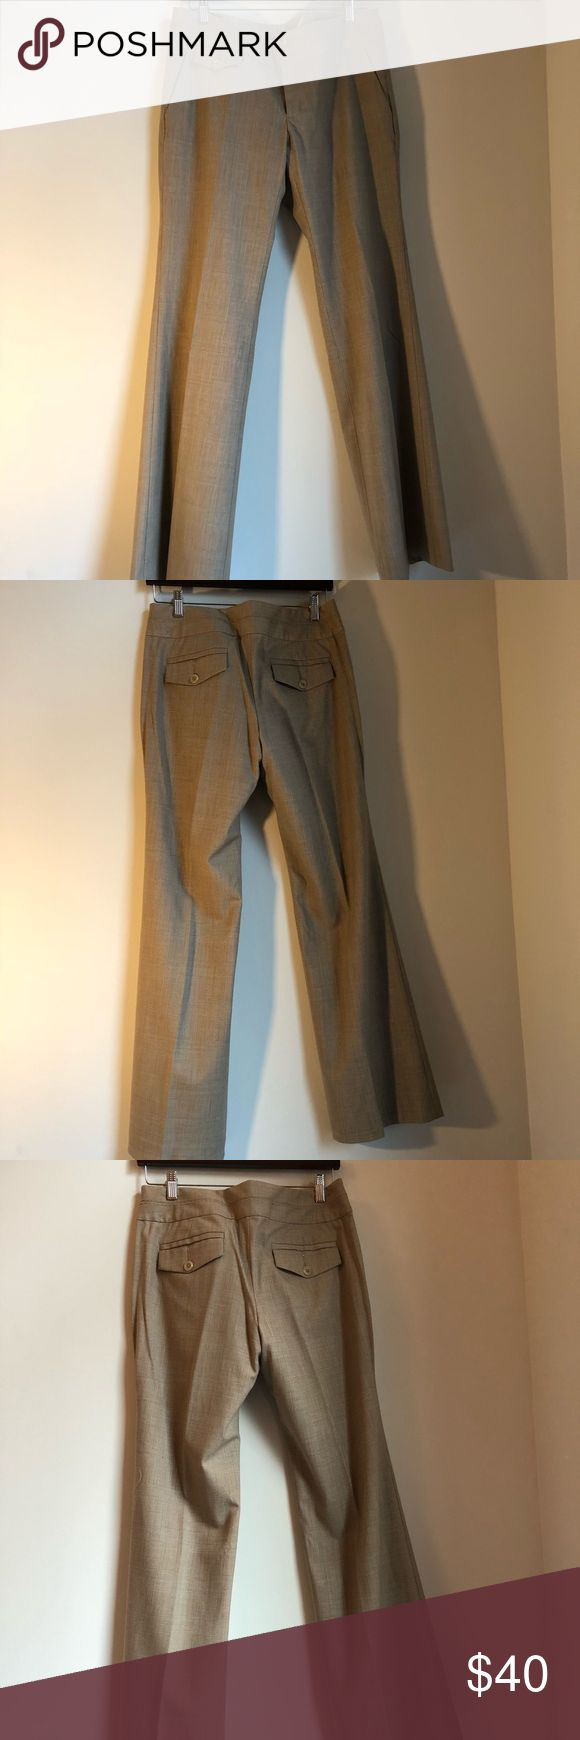 Banana Republic suit trousers in brown plaid Banana Republic suit separates trousers in brown plaid, size 8. Stretch suiting material with a straight leg. Worn once. Banana Republic Pants Trousers